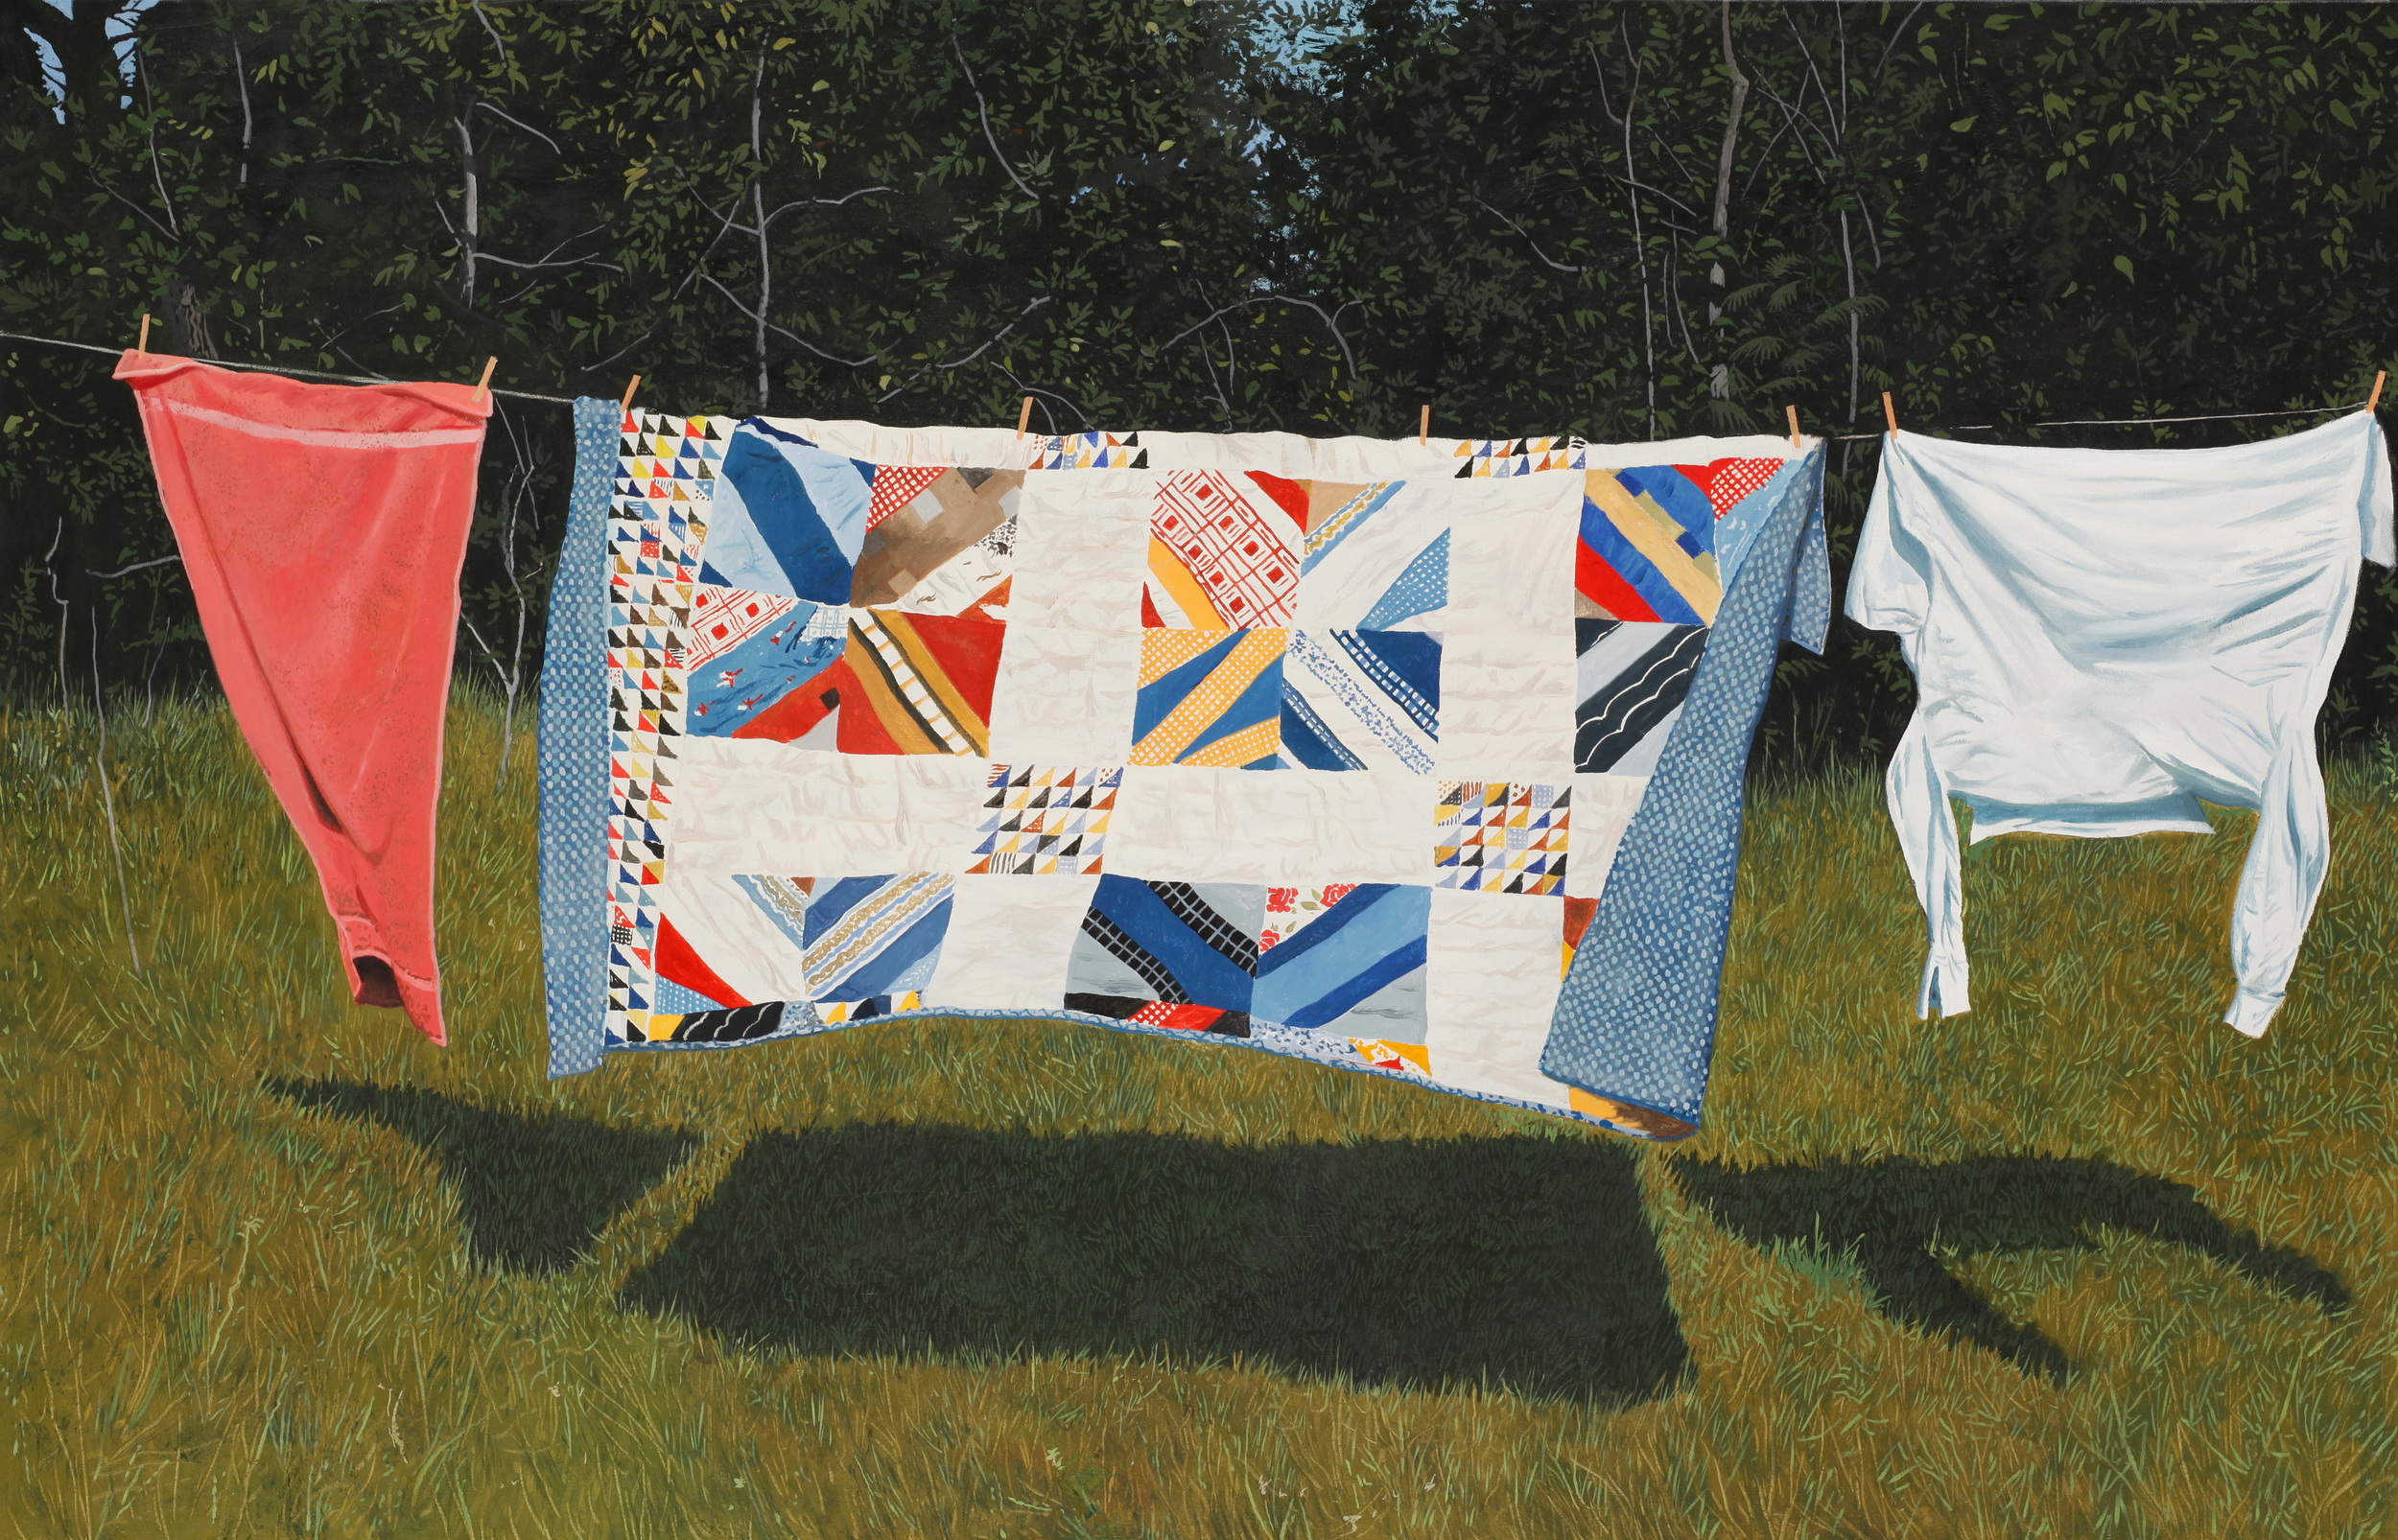 "Daniel Blagg, Airing Out, 2005, oil on canvas, 40 x 60"". Private Collection, Canada."